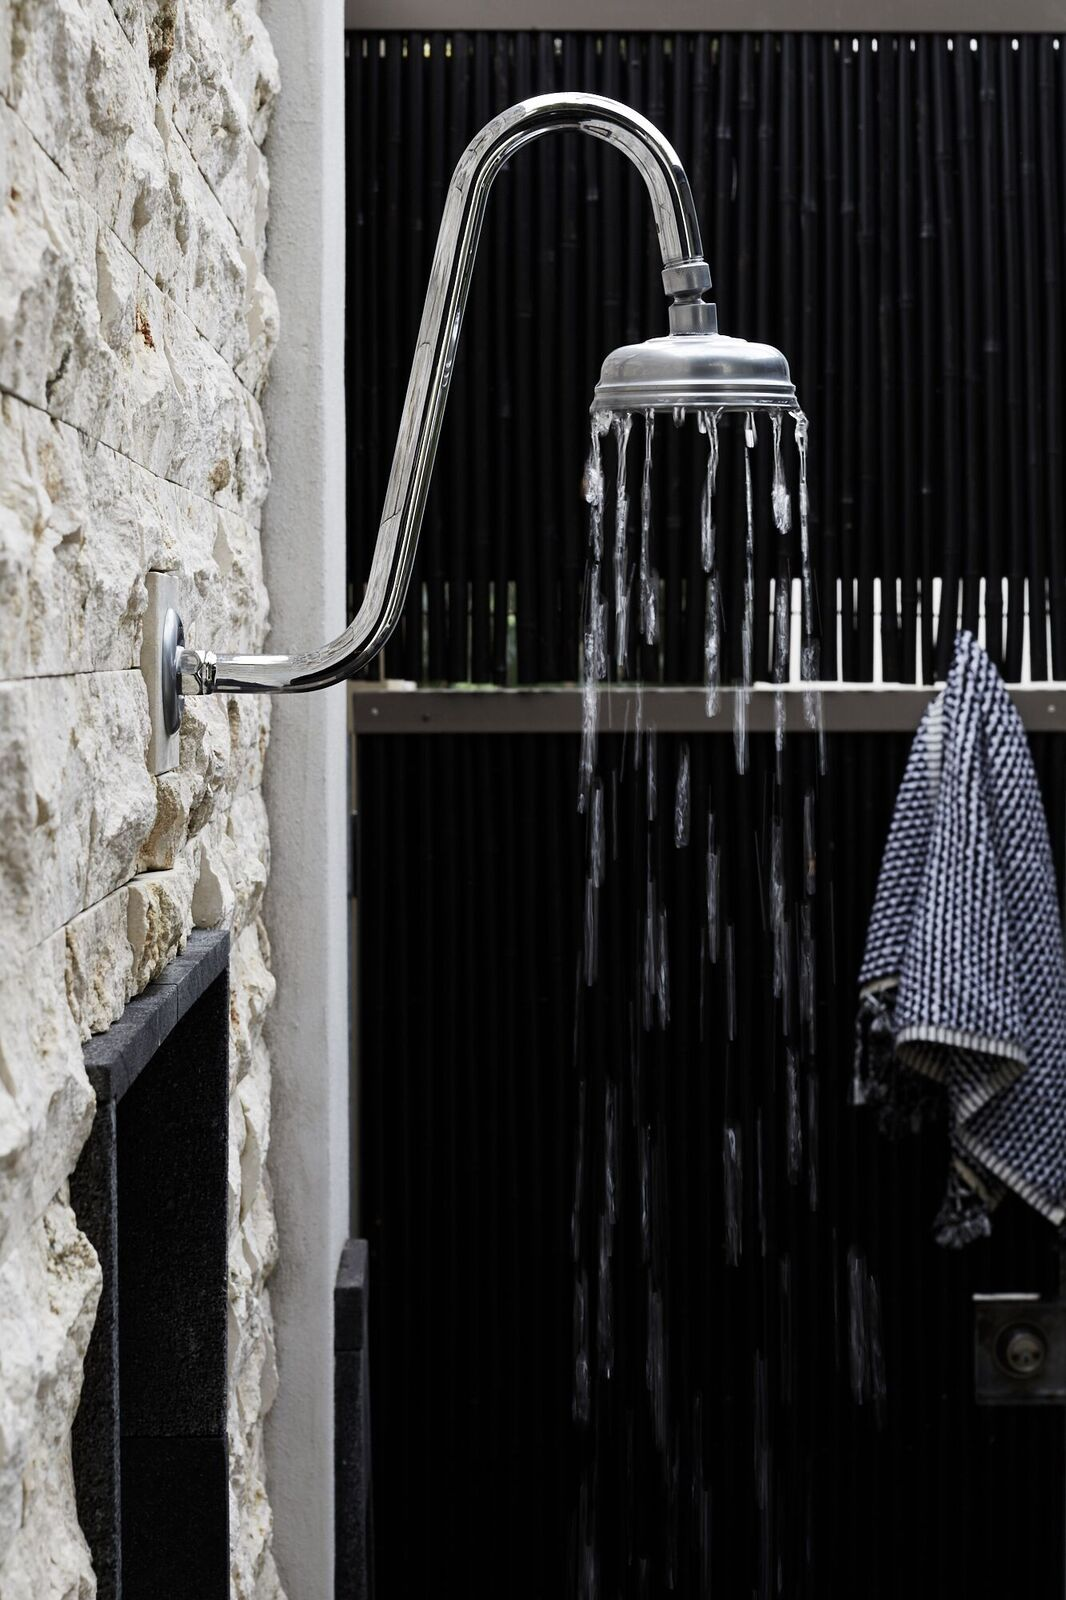 The Villas of Byron Outdoor Shower